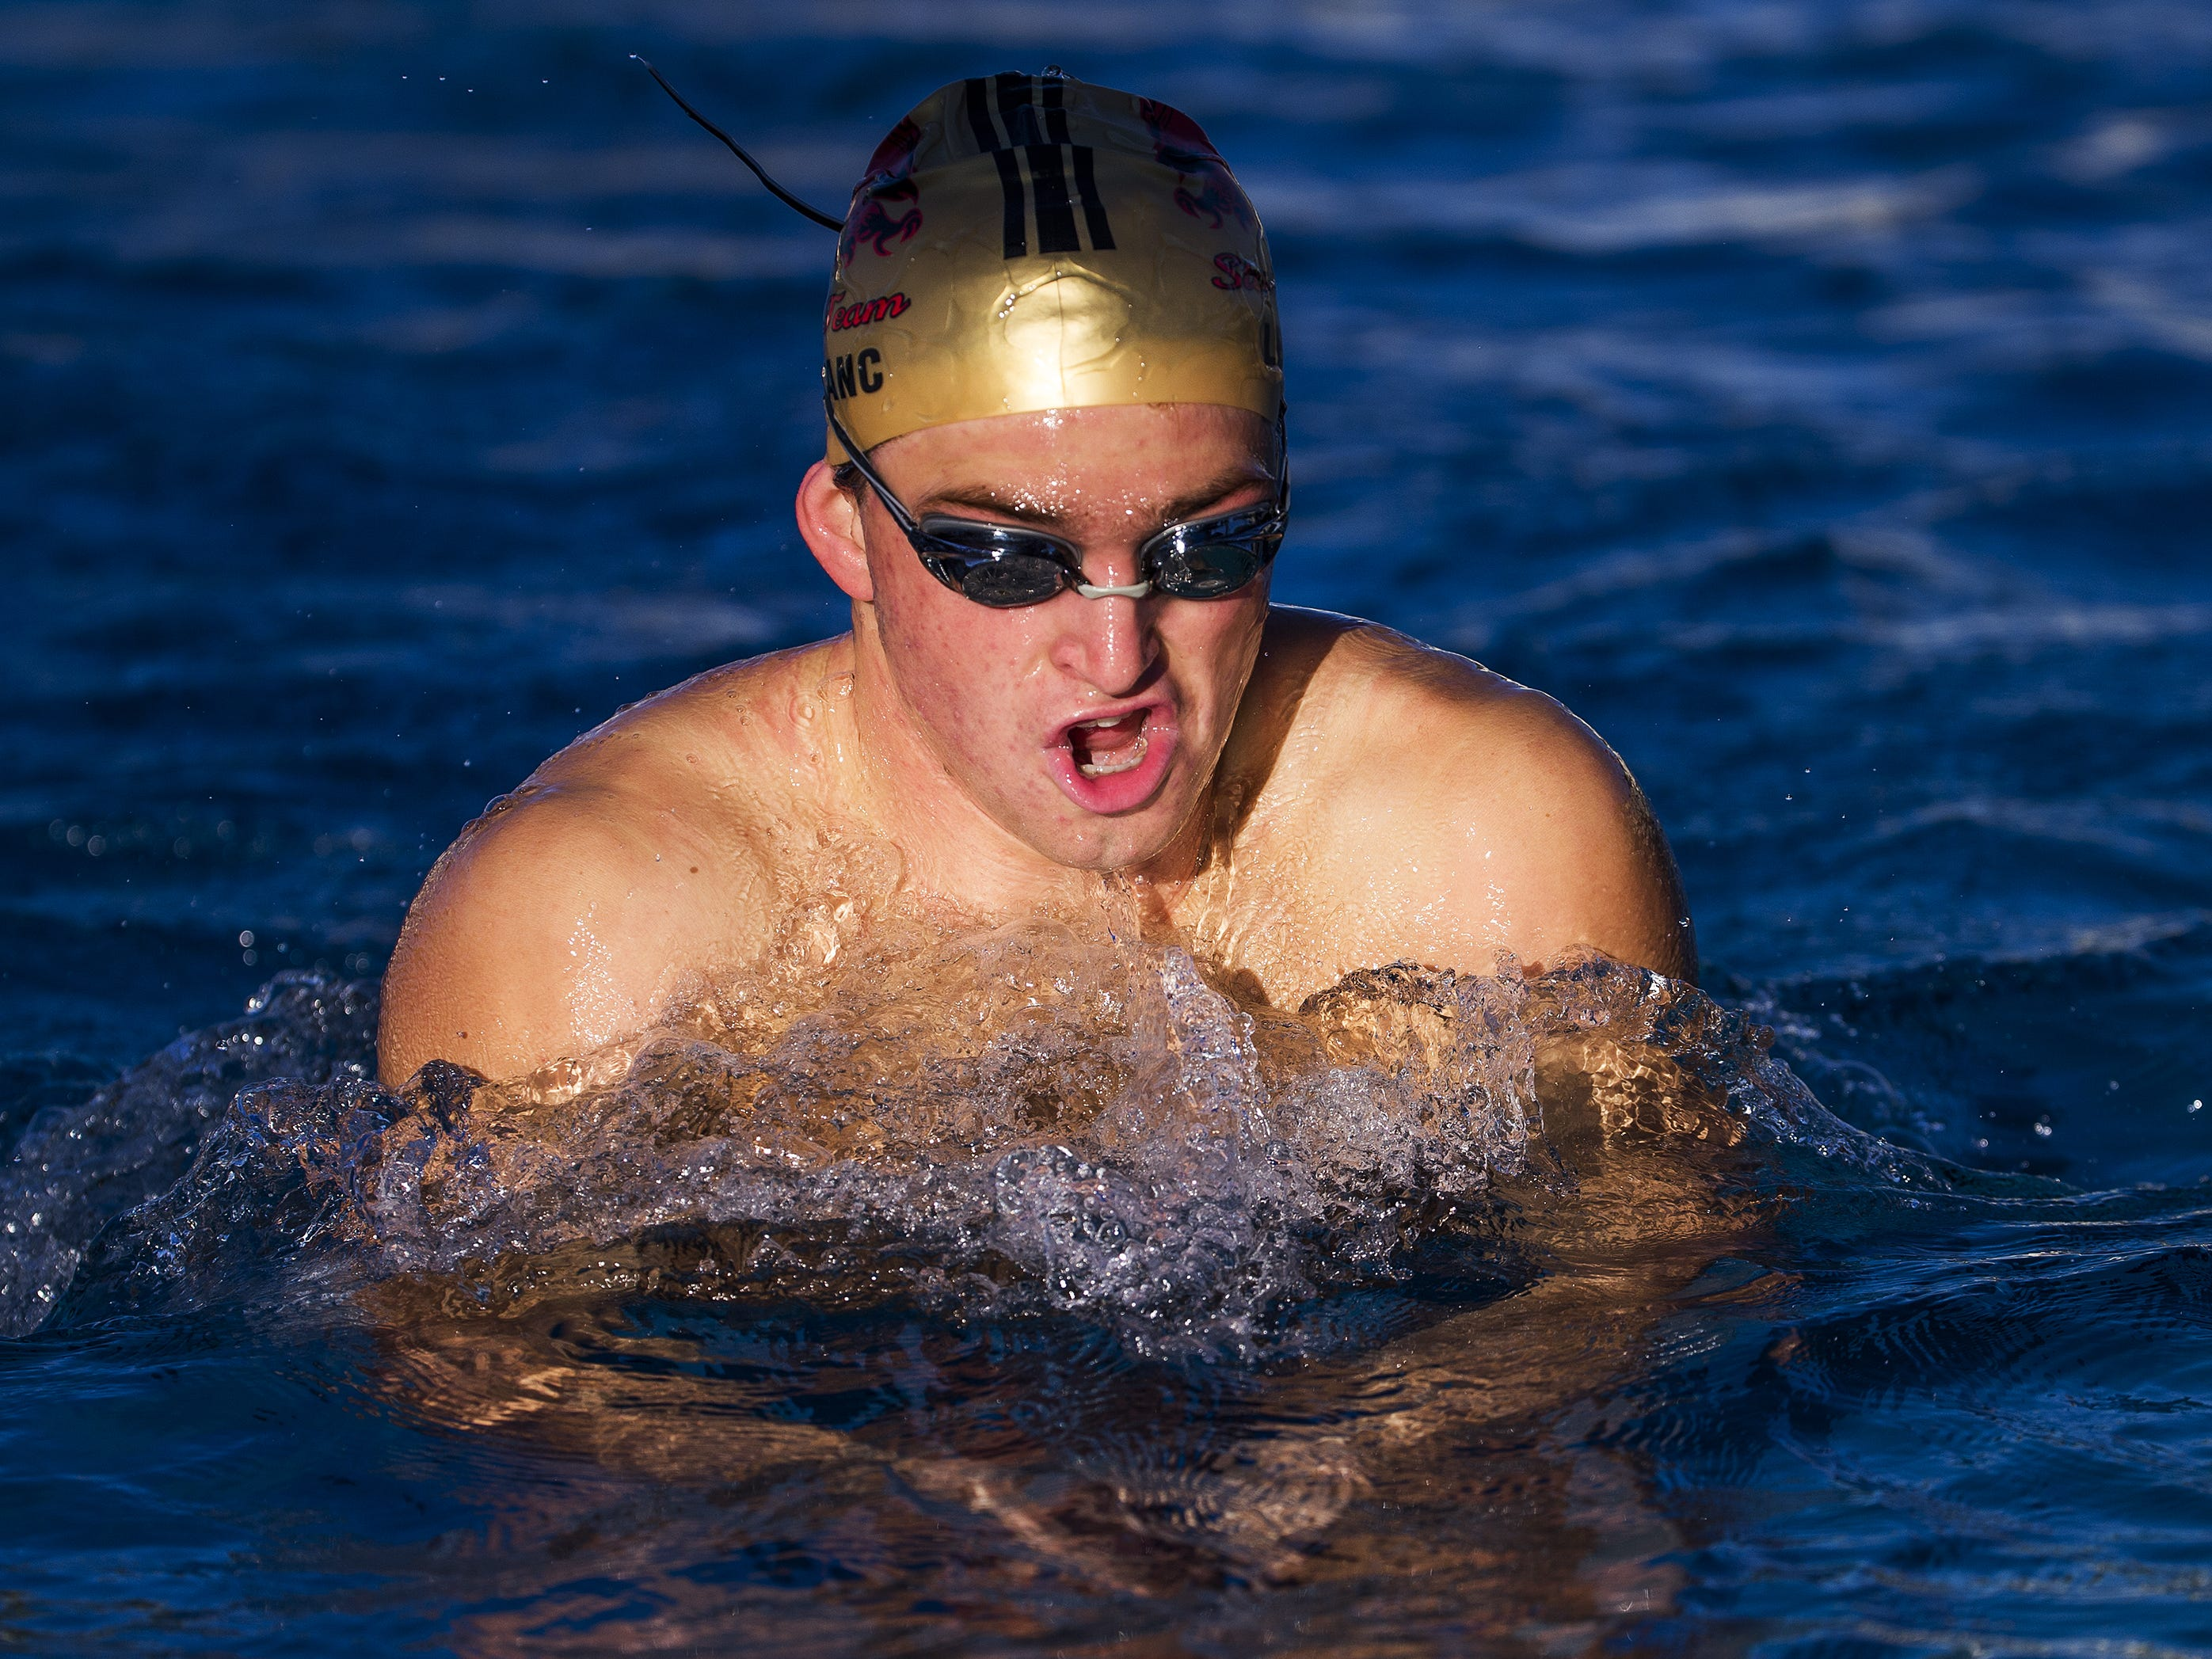 Chaparral High School swimmer Matthew Leblanc practices with the team at Cactus Aquatics and Fitness Center, Wednesday, October 31, 2018.